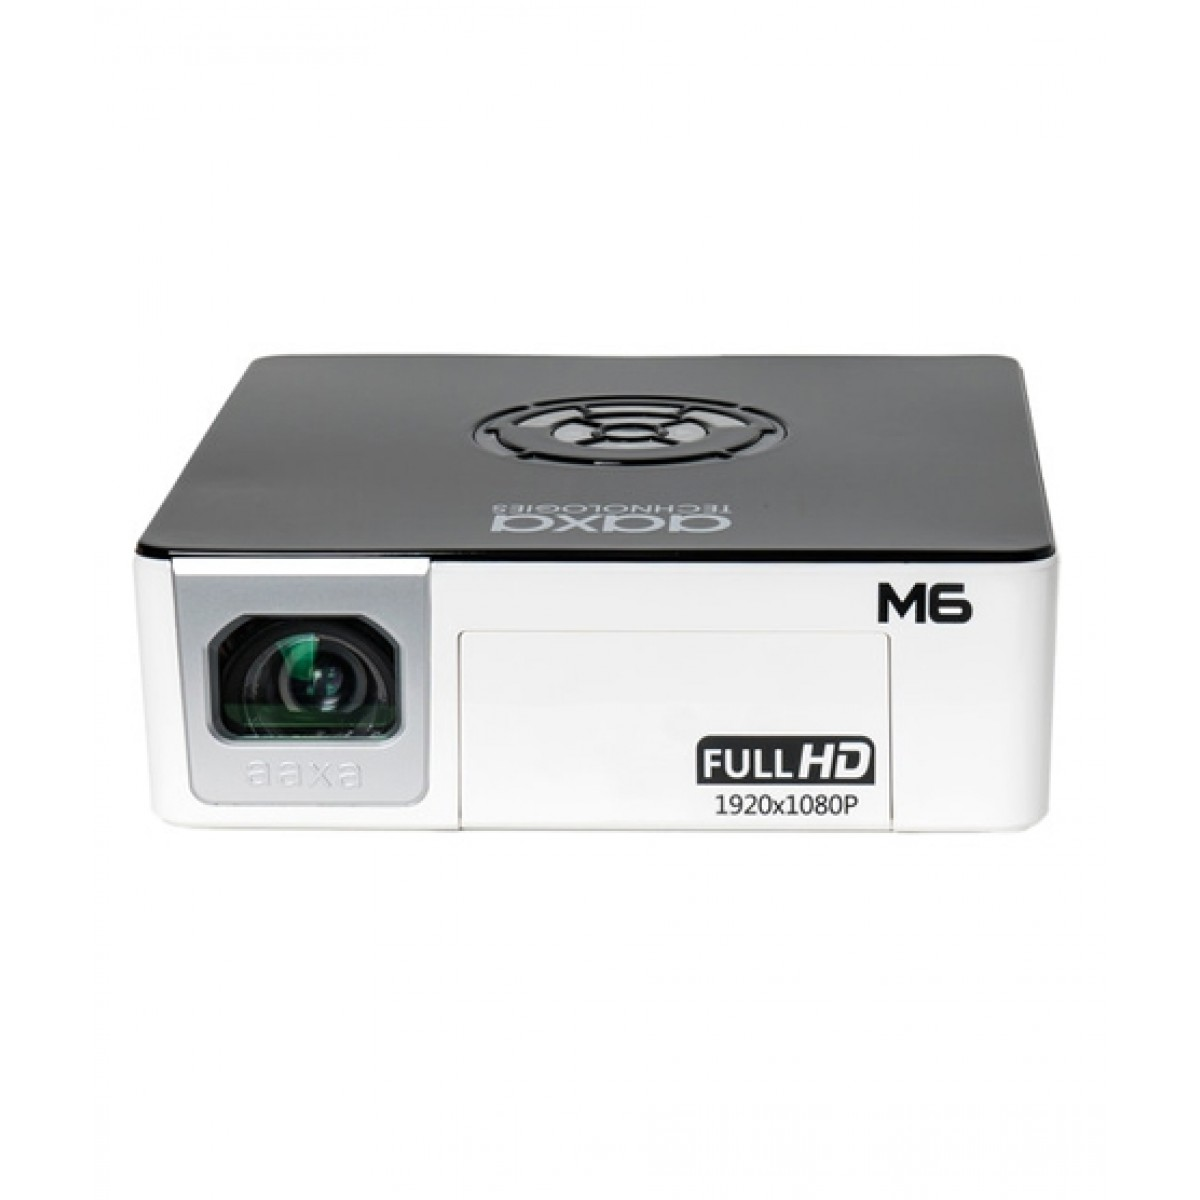 73ae1163011ac5 AAXA Technologies M6 LED Pico Projector Price in Pakistan | Buy AAXA  Technologies M6 1200-Lumen Full HD LED Pico Projector | iShopping.pk